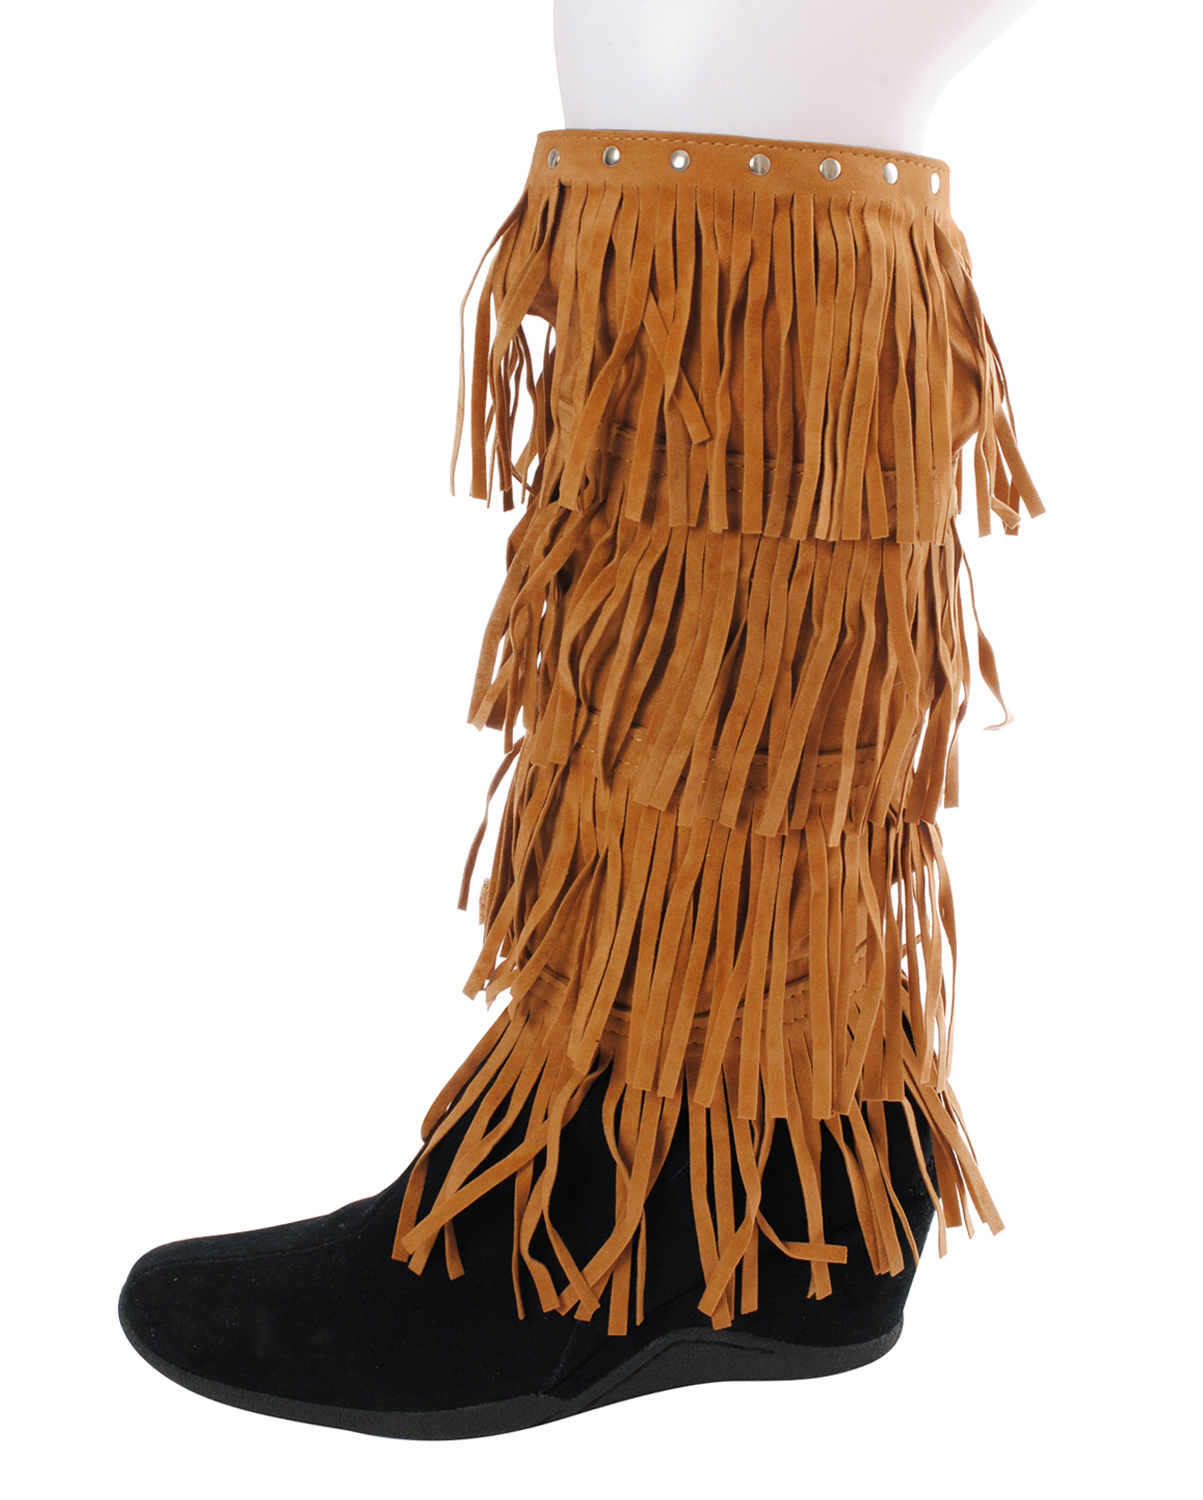 OL0062SV(BR)-wholesale-boot-topper-cuffs-rugs-faux-leather-solid-western-fringe-size-adjustable-velcro-closure-(0).jpg